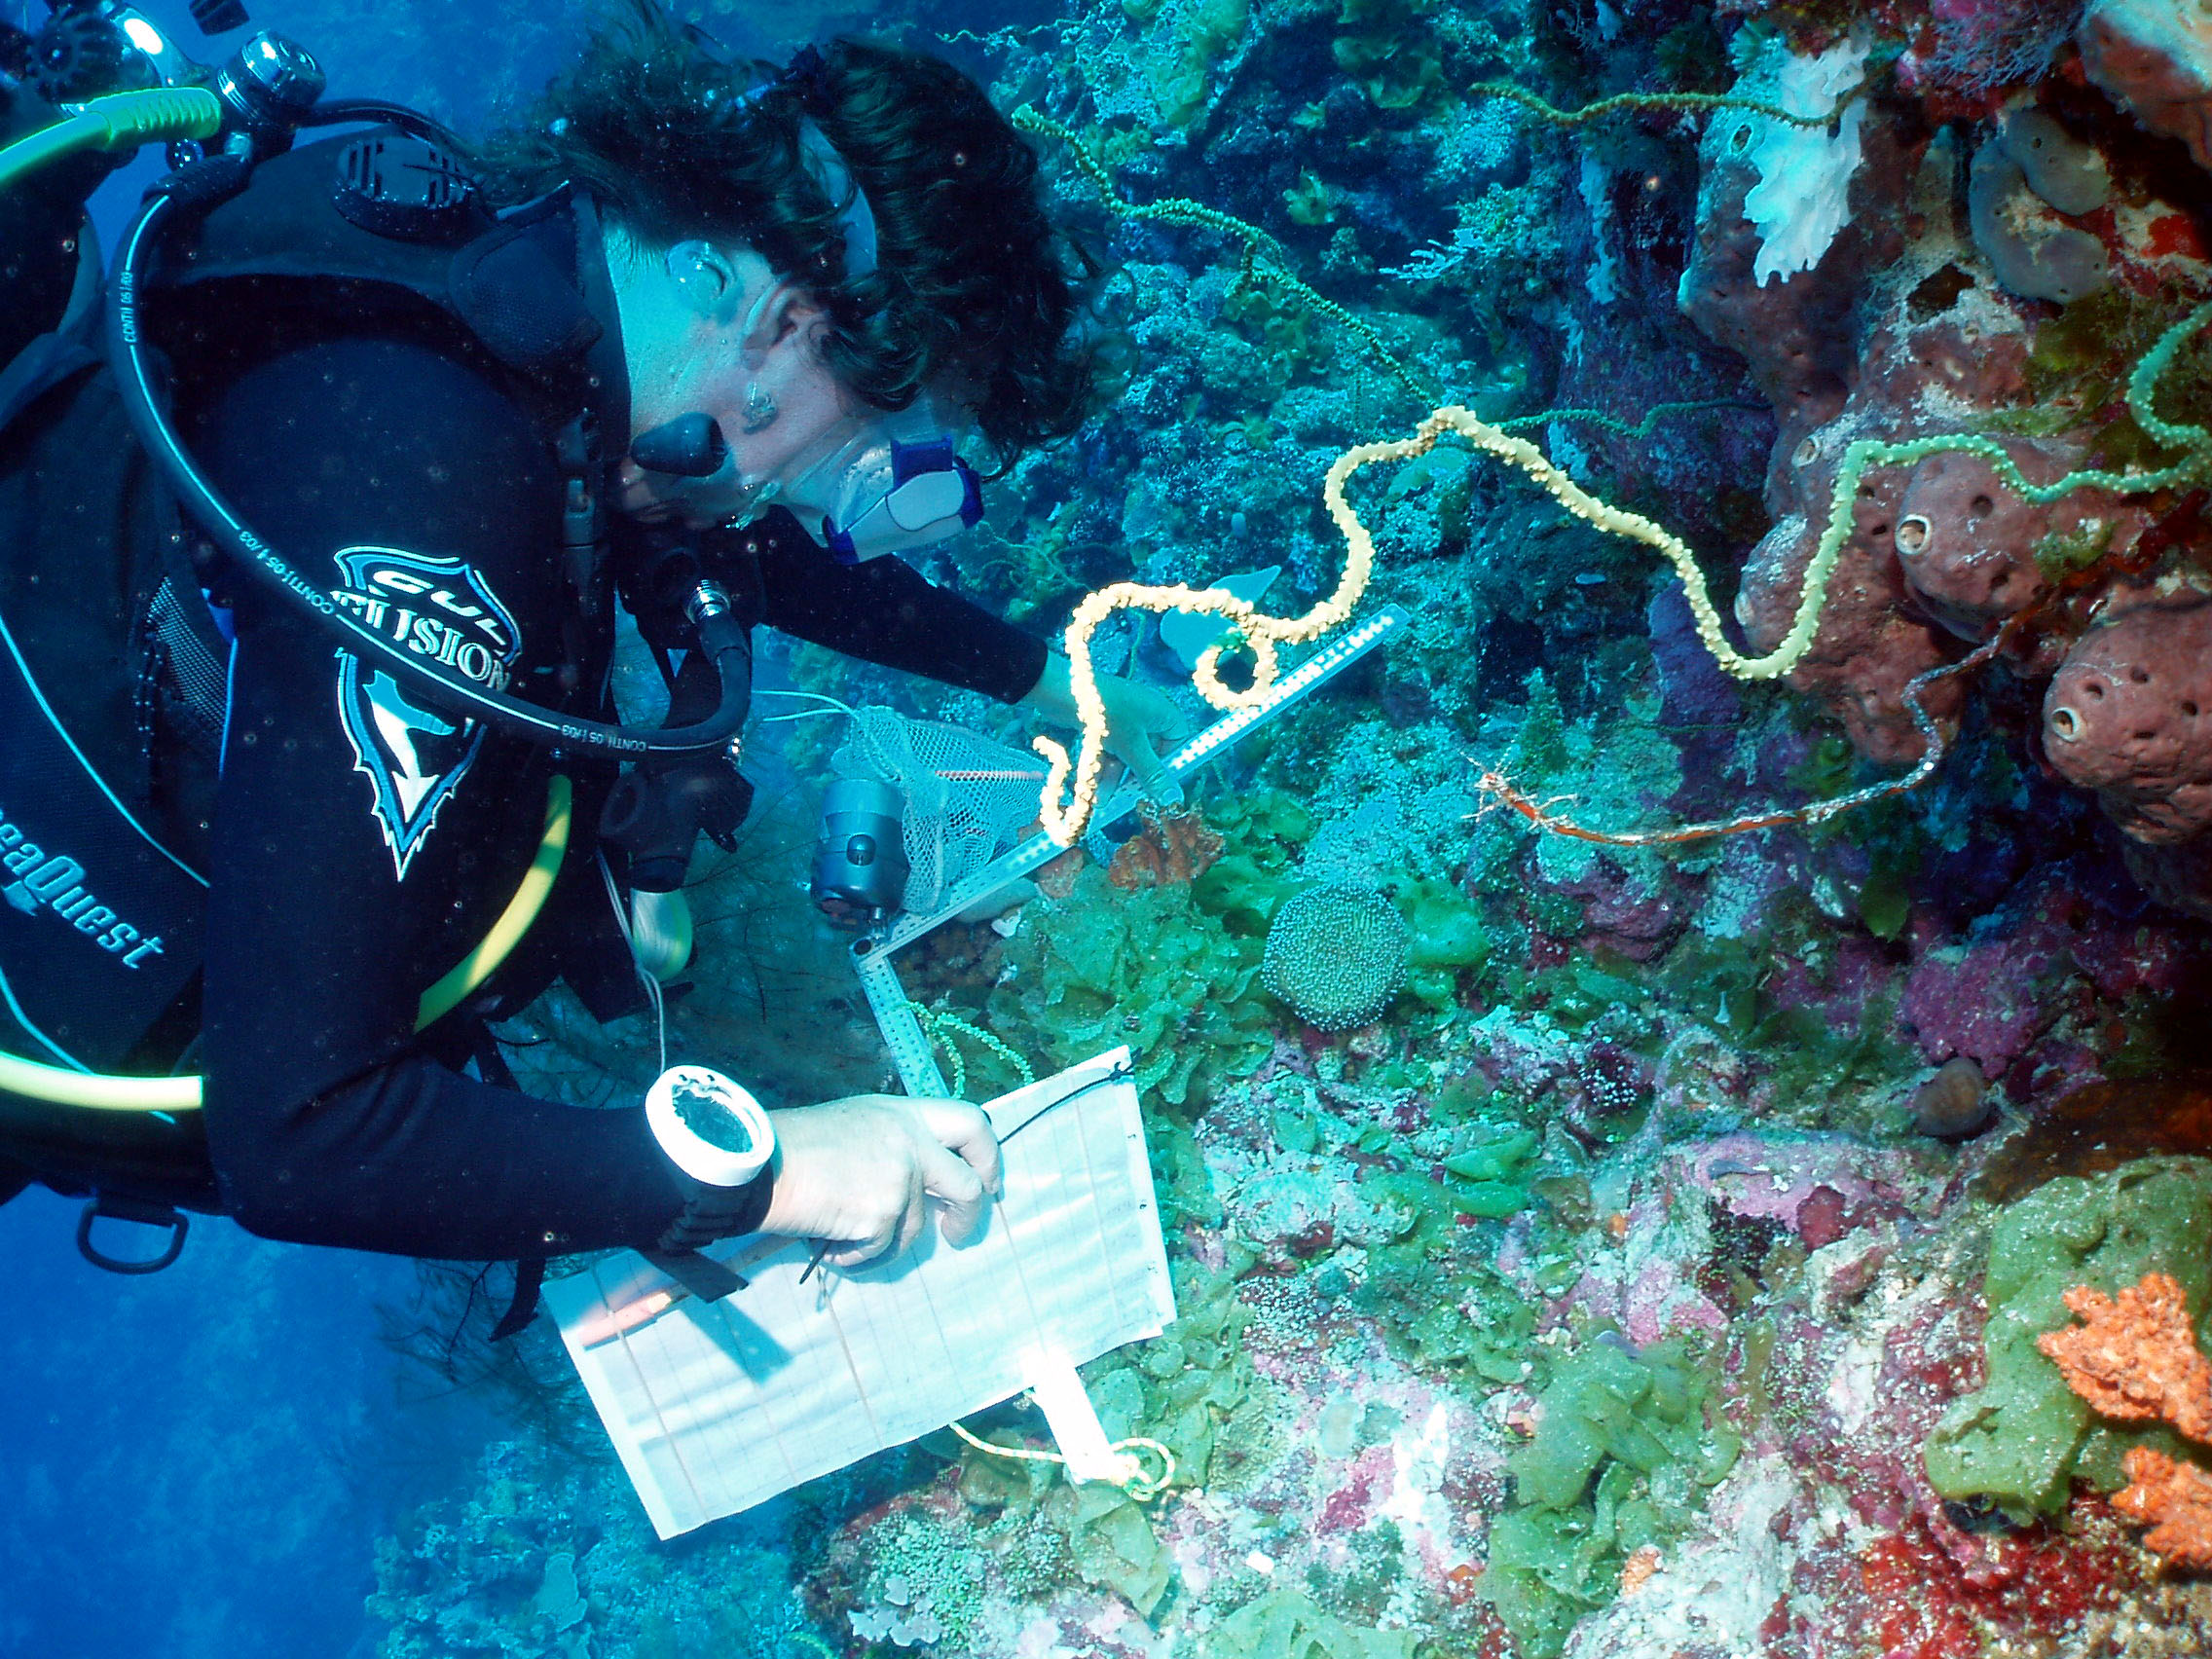 An example of a marine ecosystem being studied by a scientist.